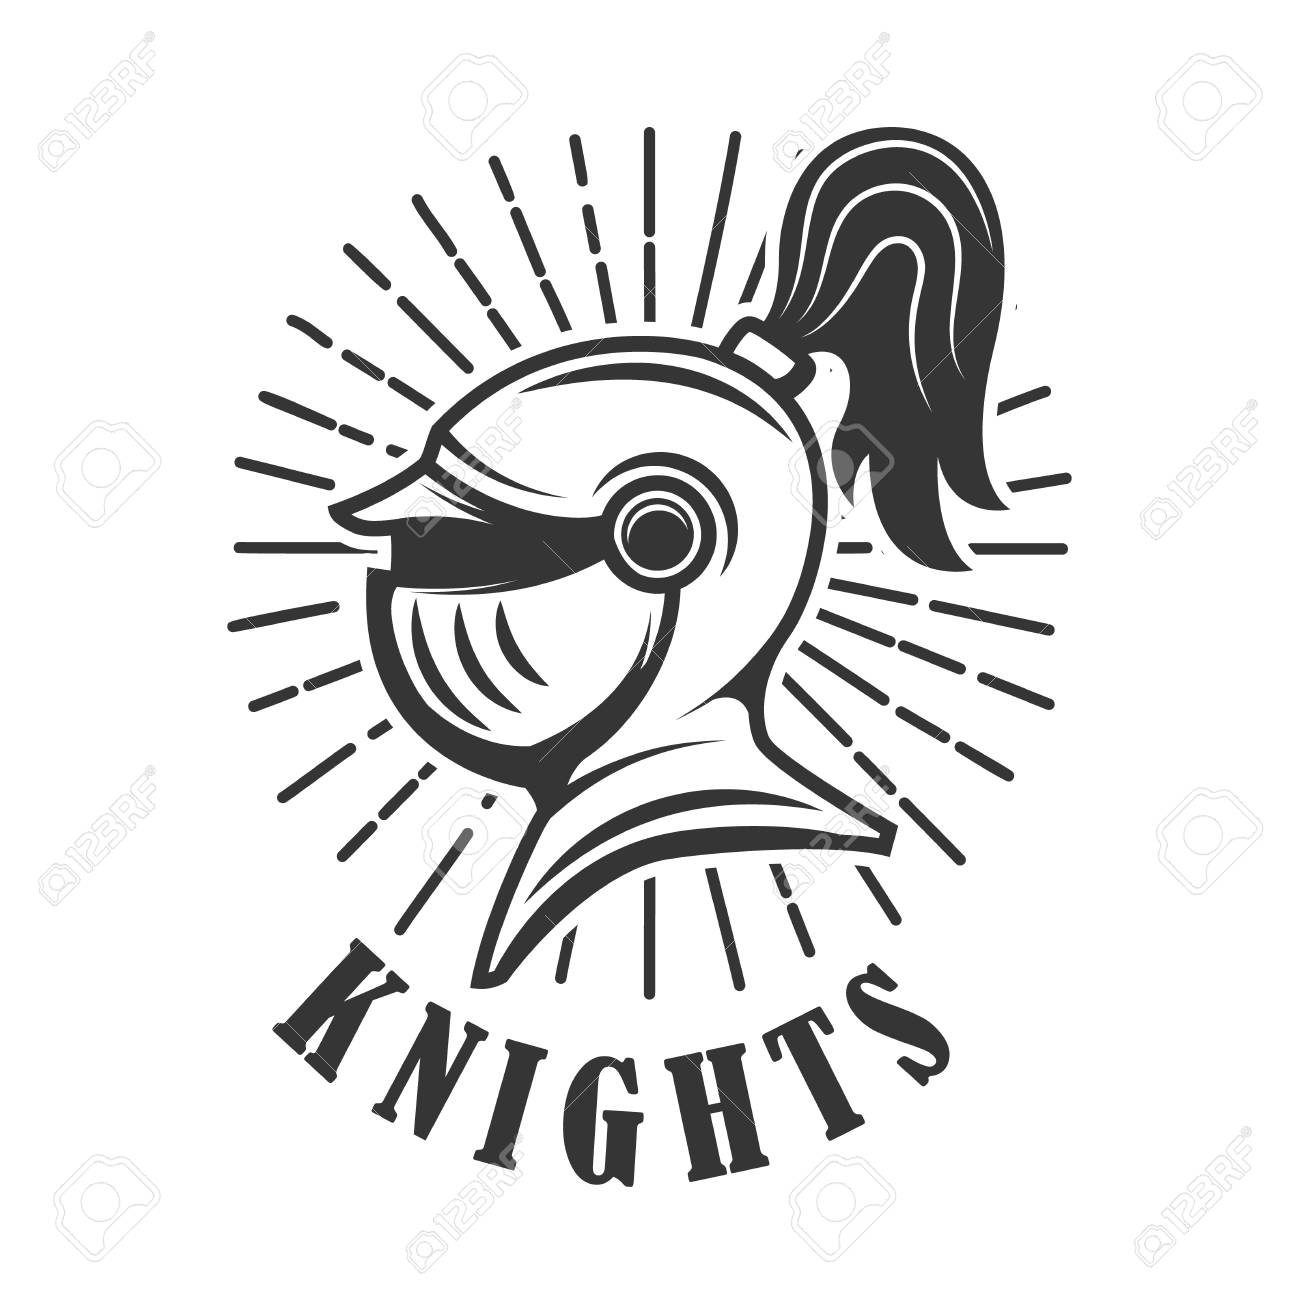 knights emblem template with medieval knight helmet design